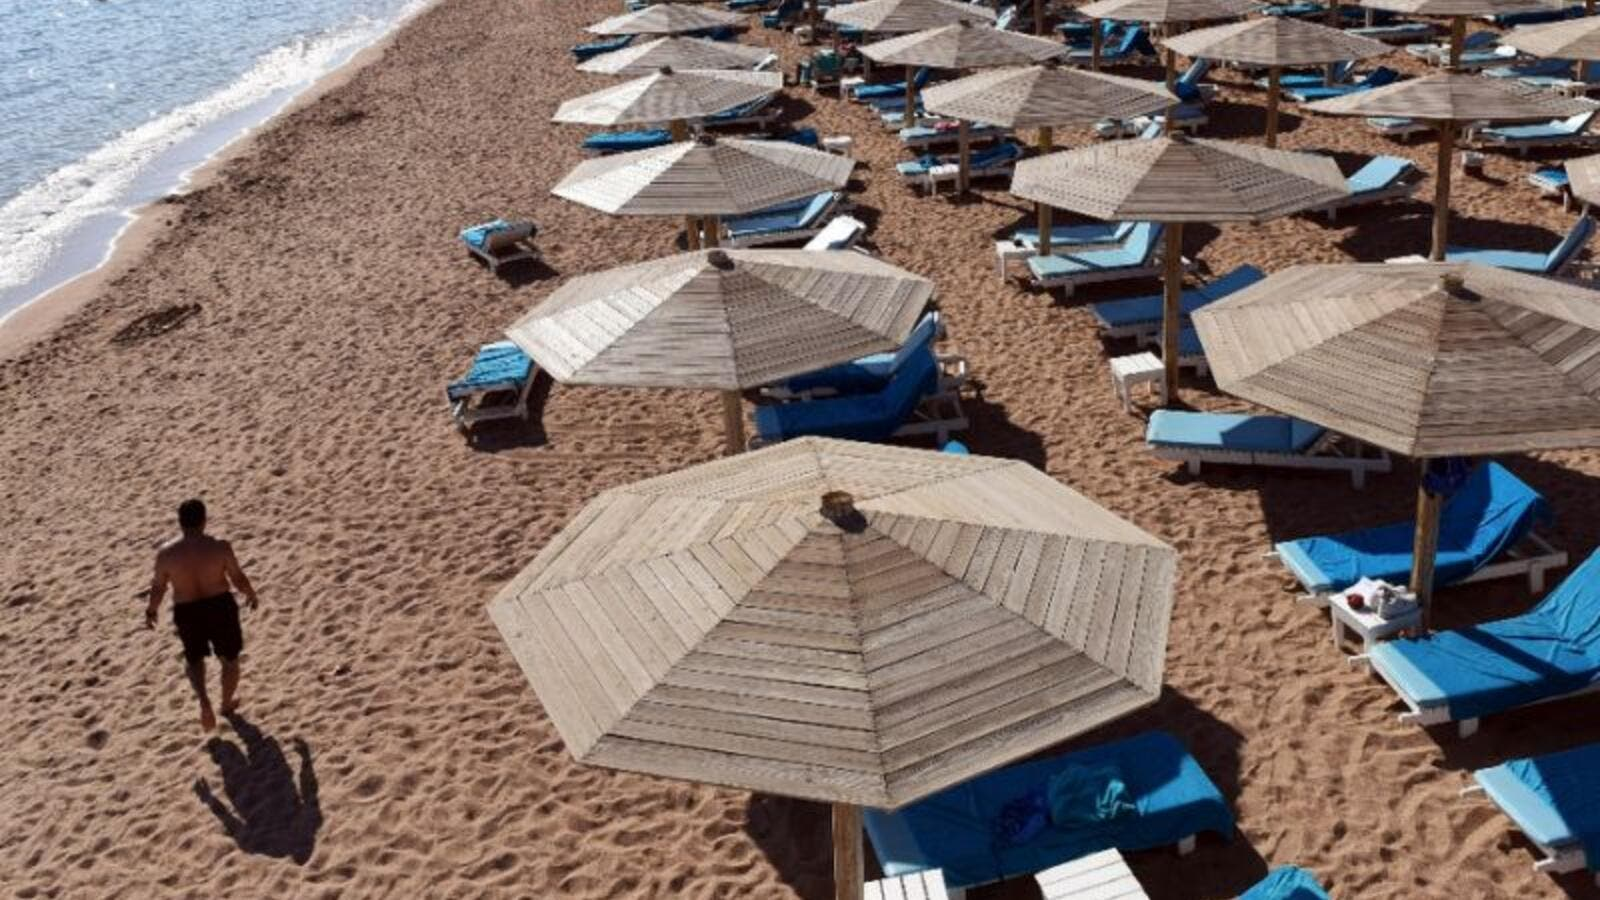 A tourist walks past empty sunbeds on a beach in Egypt. (AFP/File)